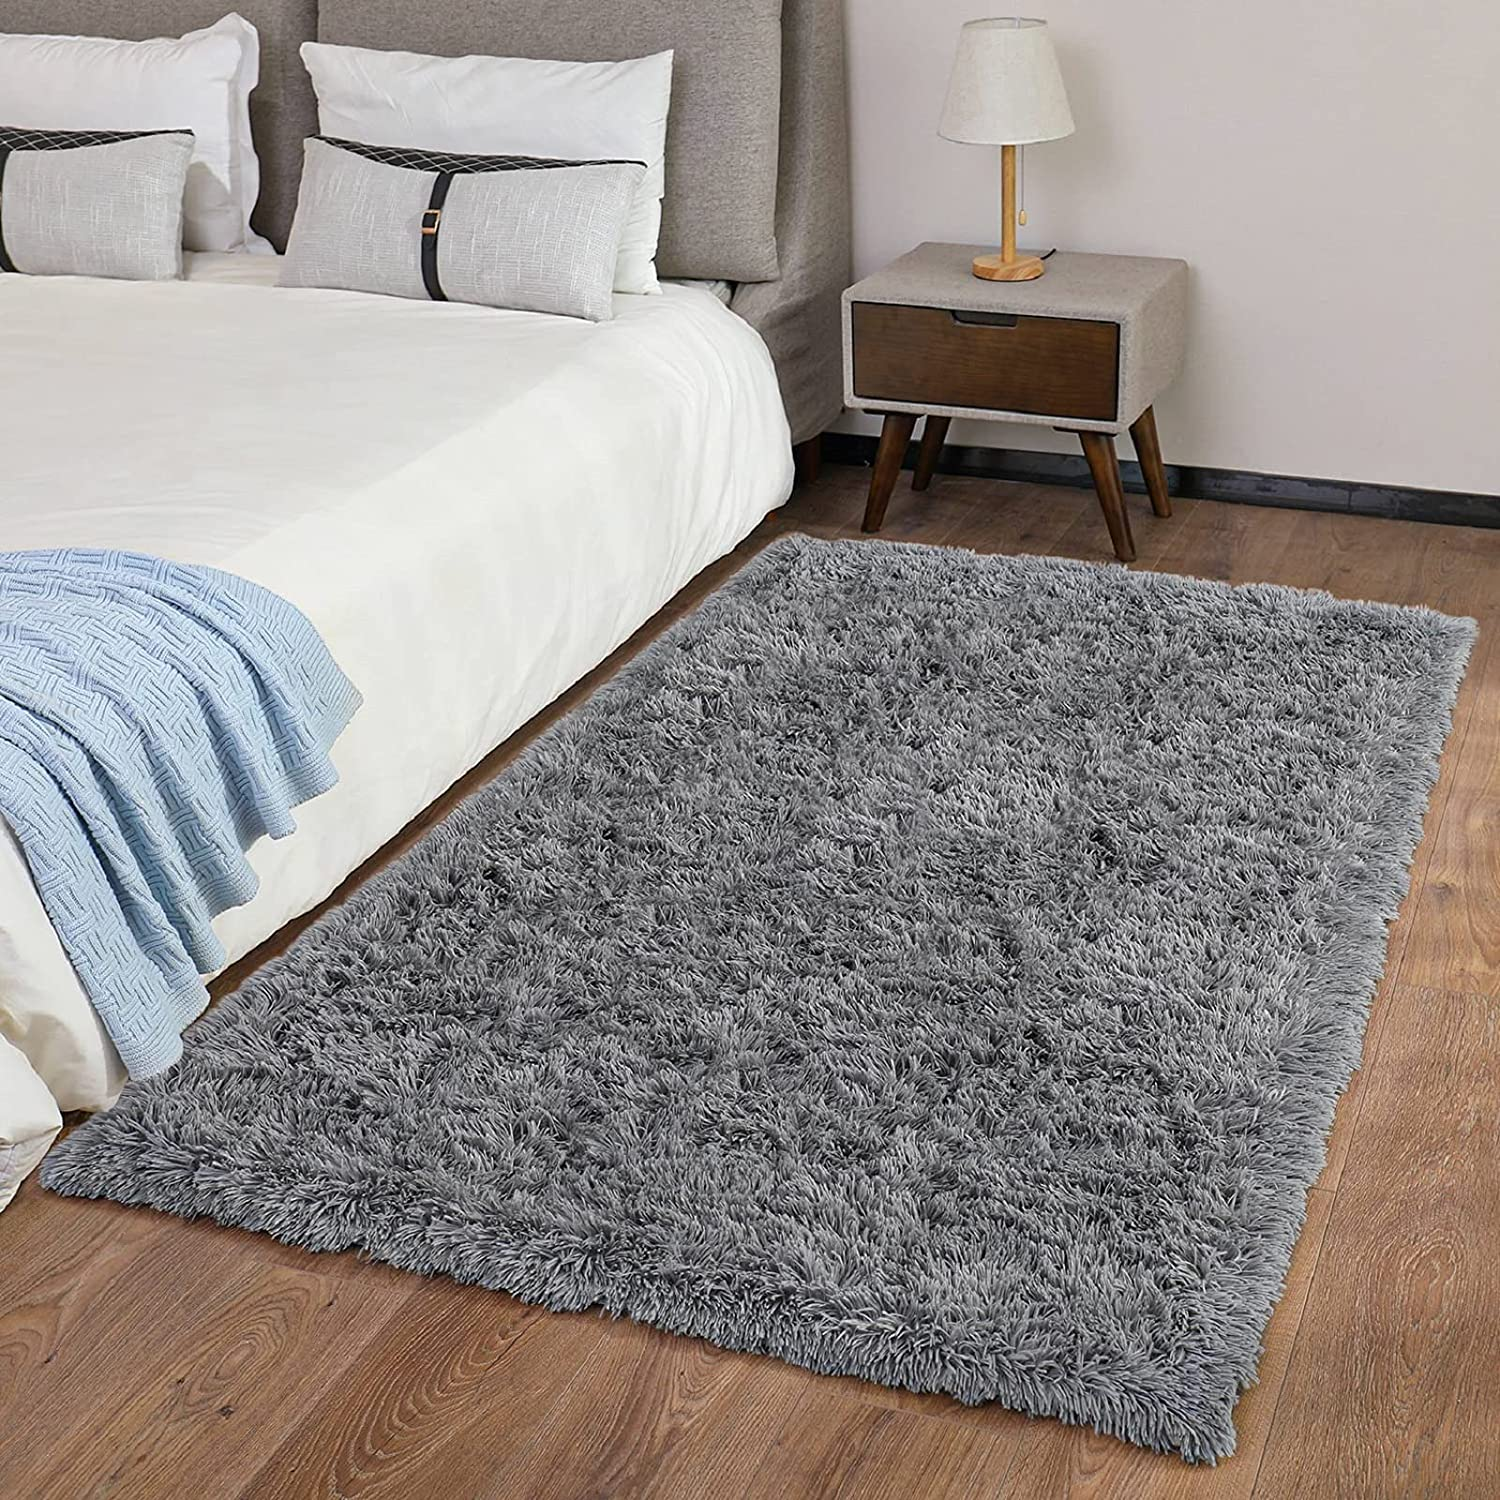 Ophanie Machine Washable Overseas parallel import regular item 3 x Some reservation 5 Sha Bedroom for Rugs Fluffy Feet